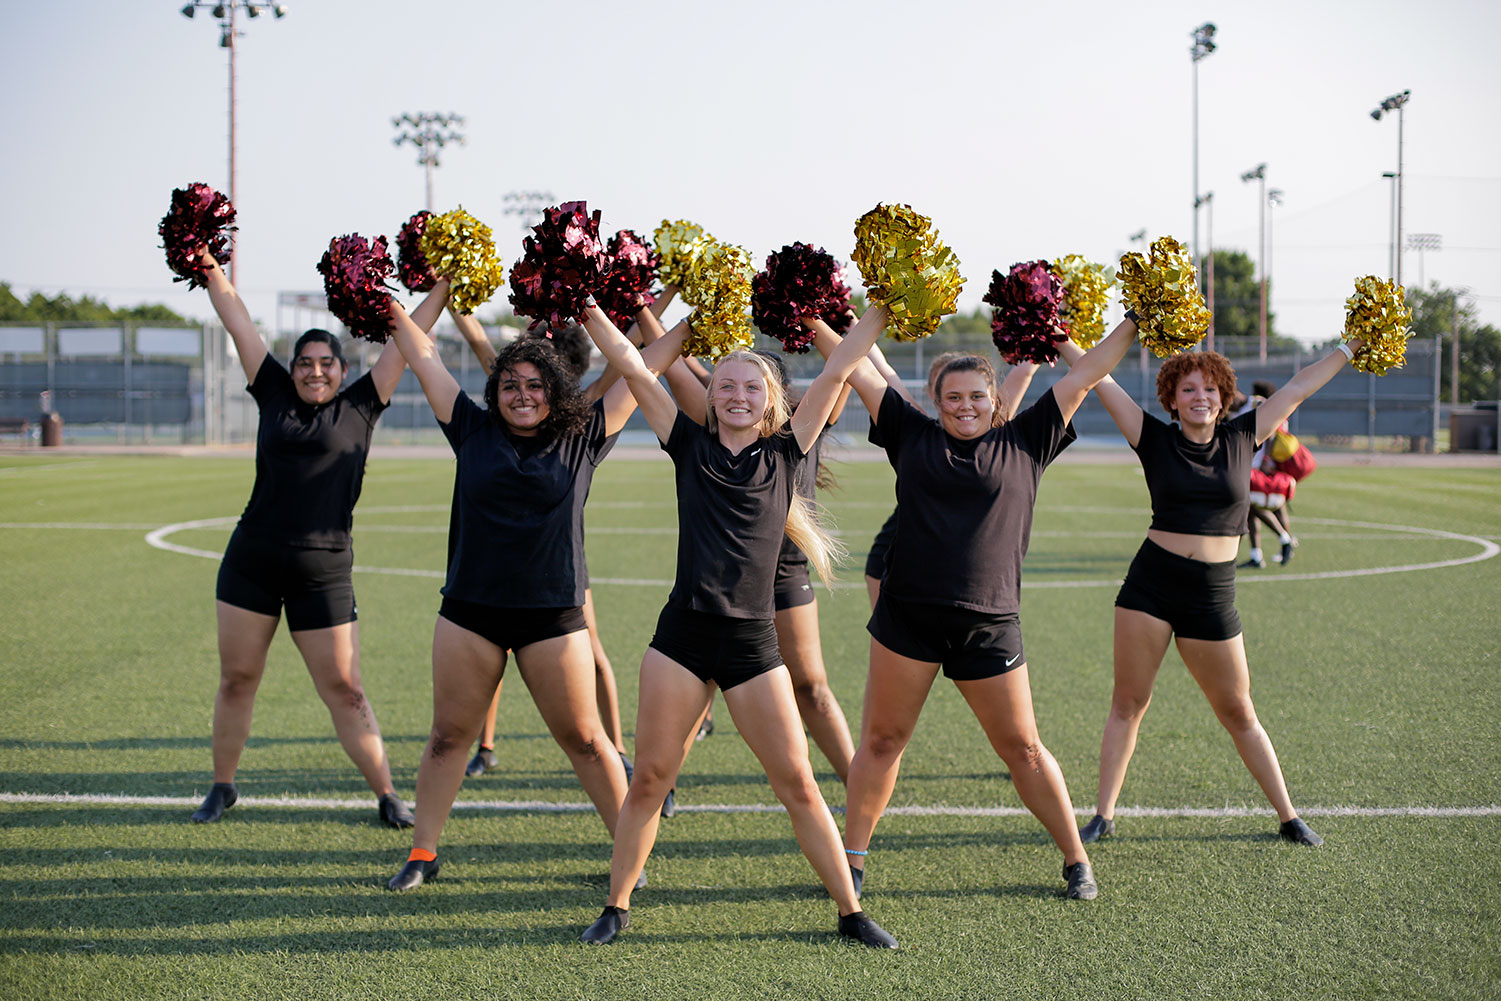 The dance team works on its routine during a cool afternoon